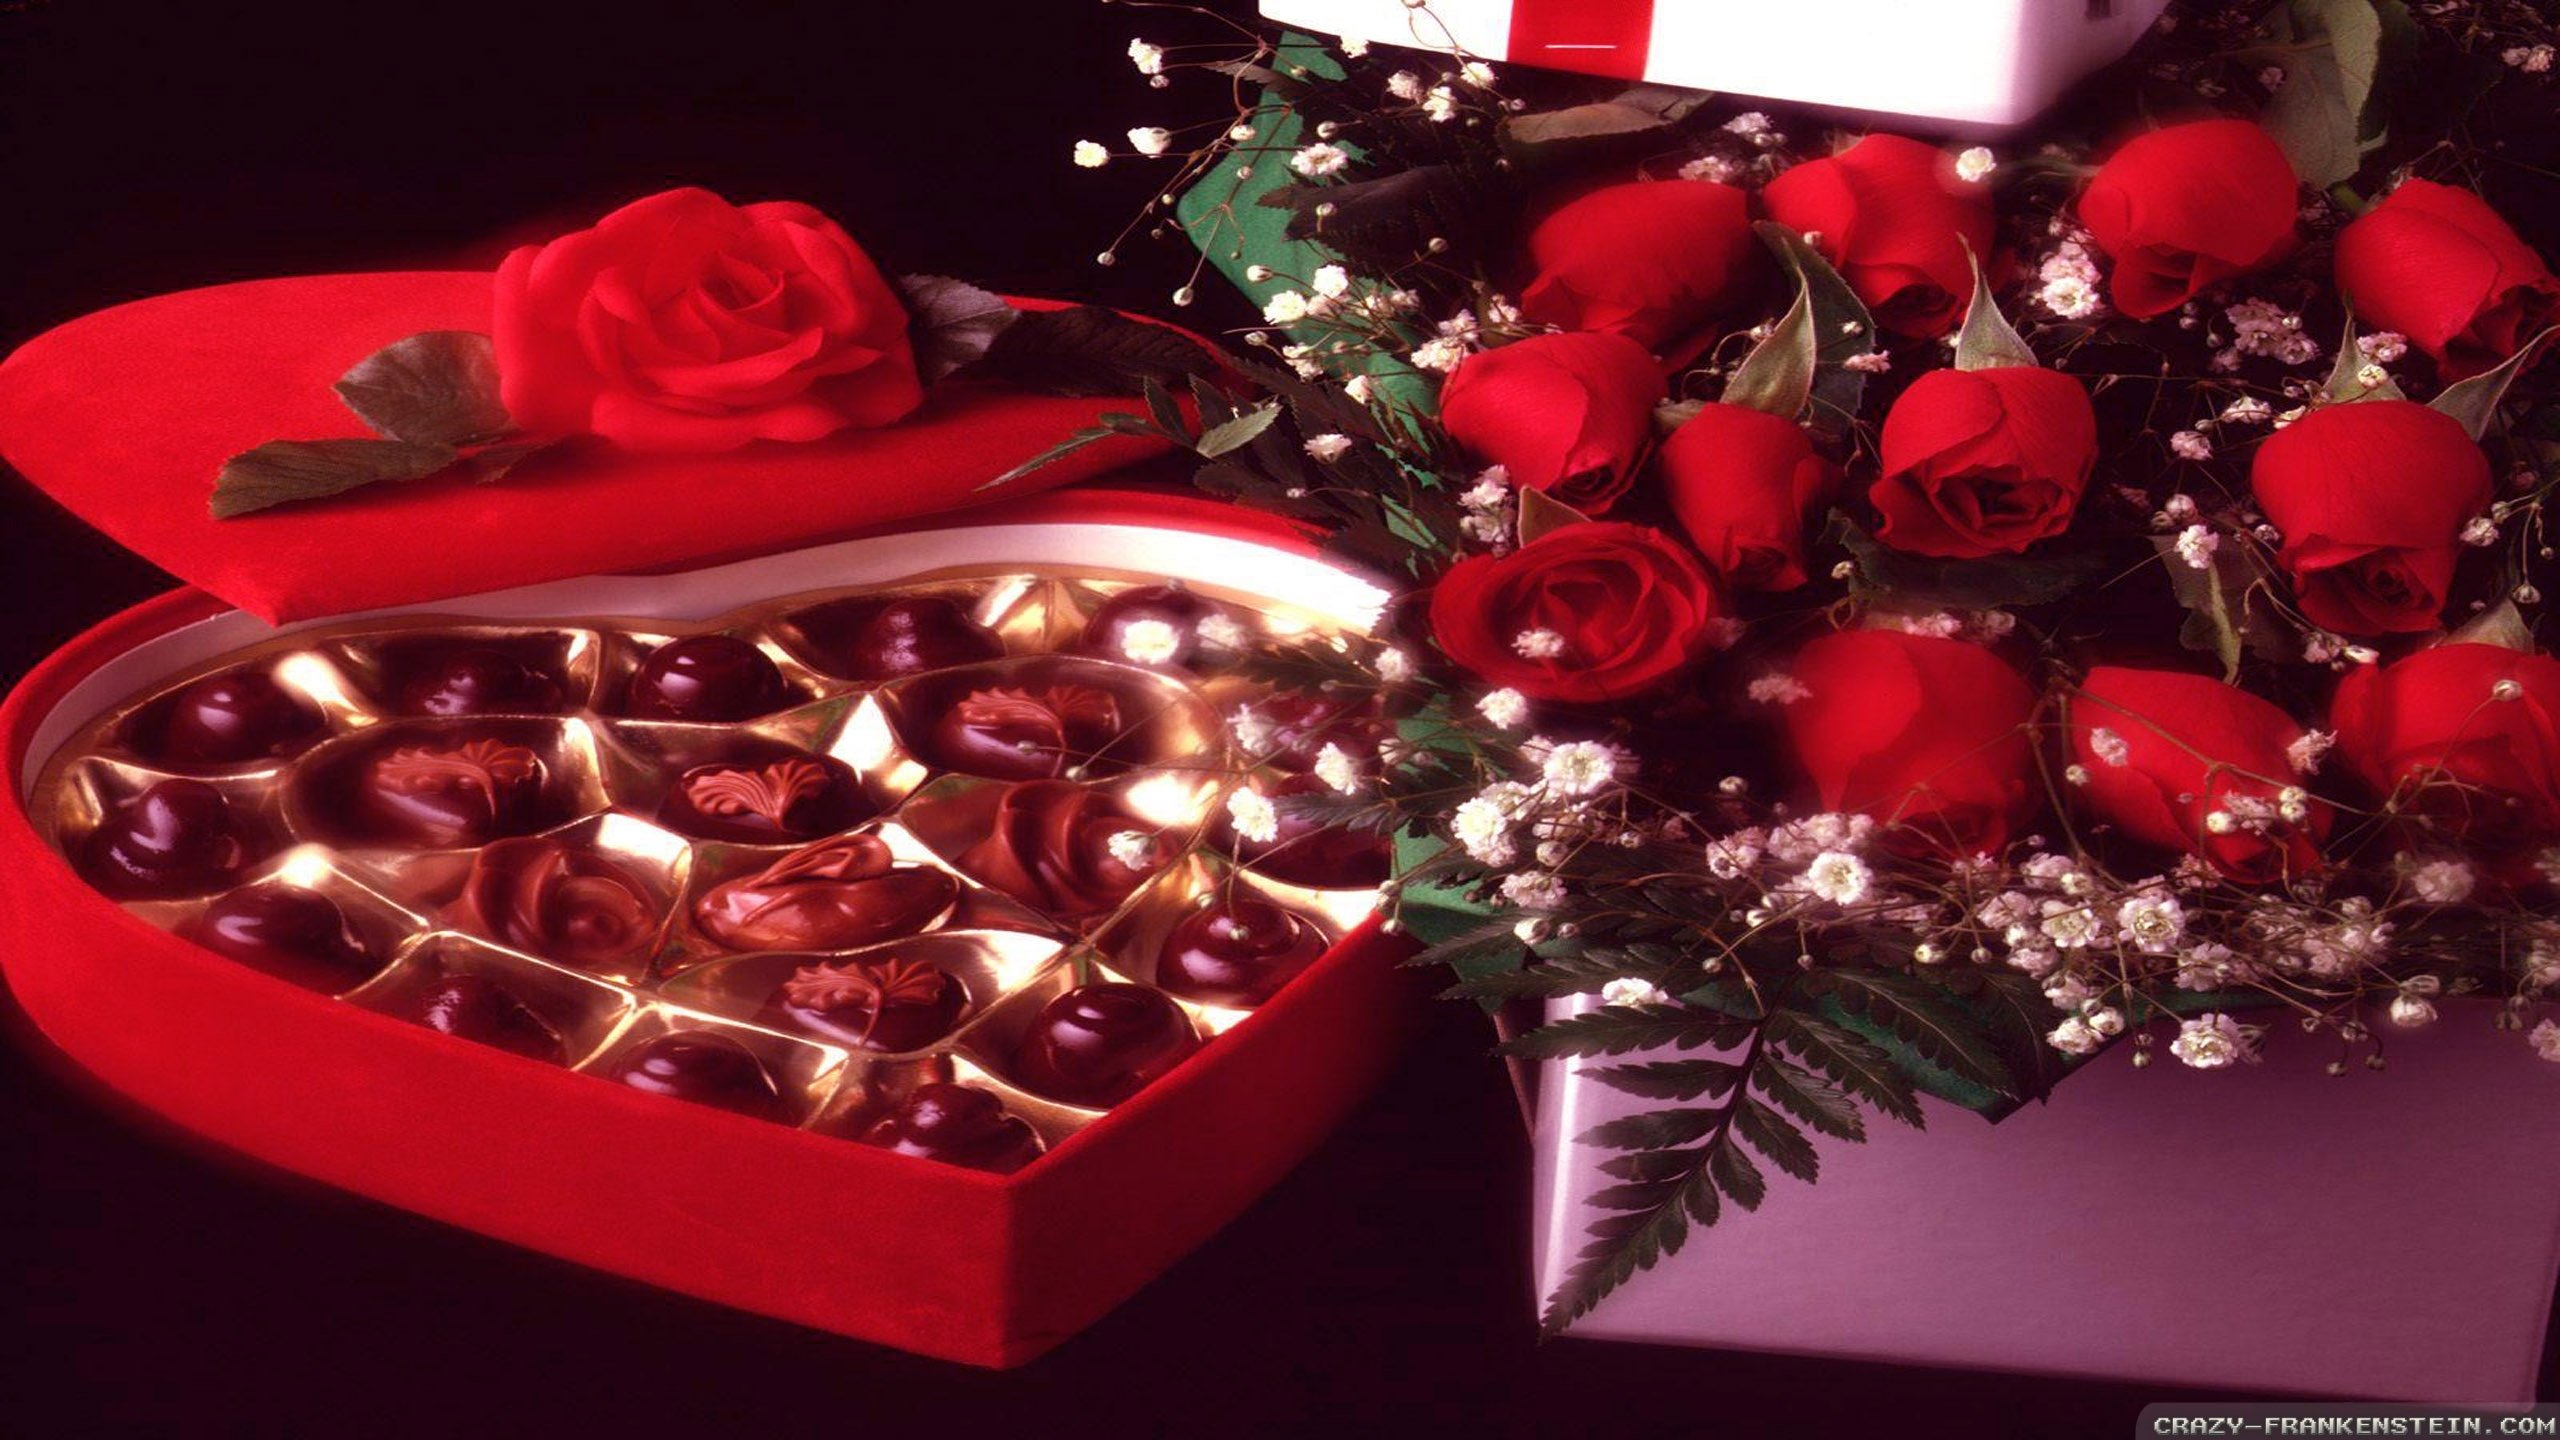 10 Nice Valentines Day Ideas For New Couples romantic gift ideasfor him or her to celebrate valentines day 2021